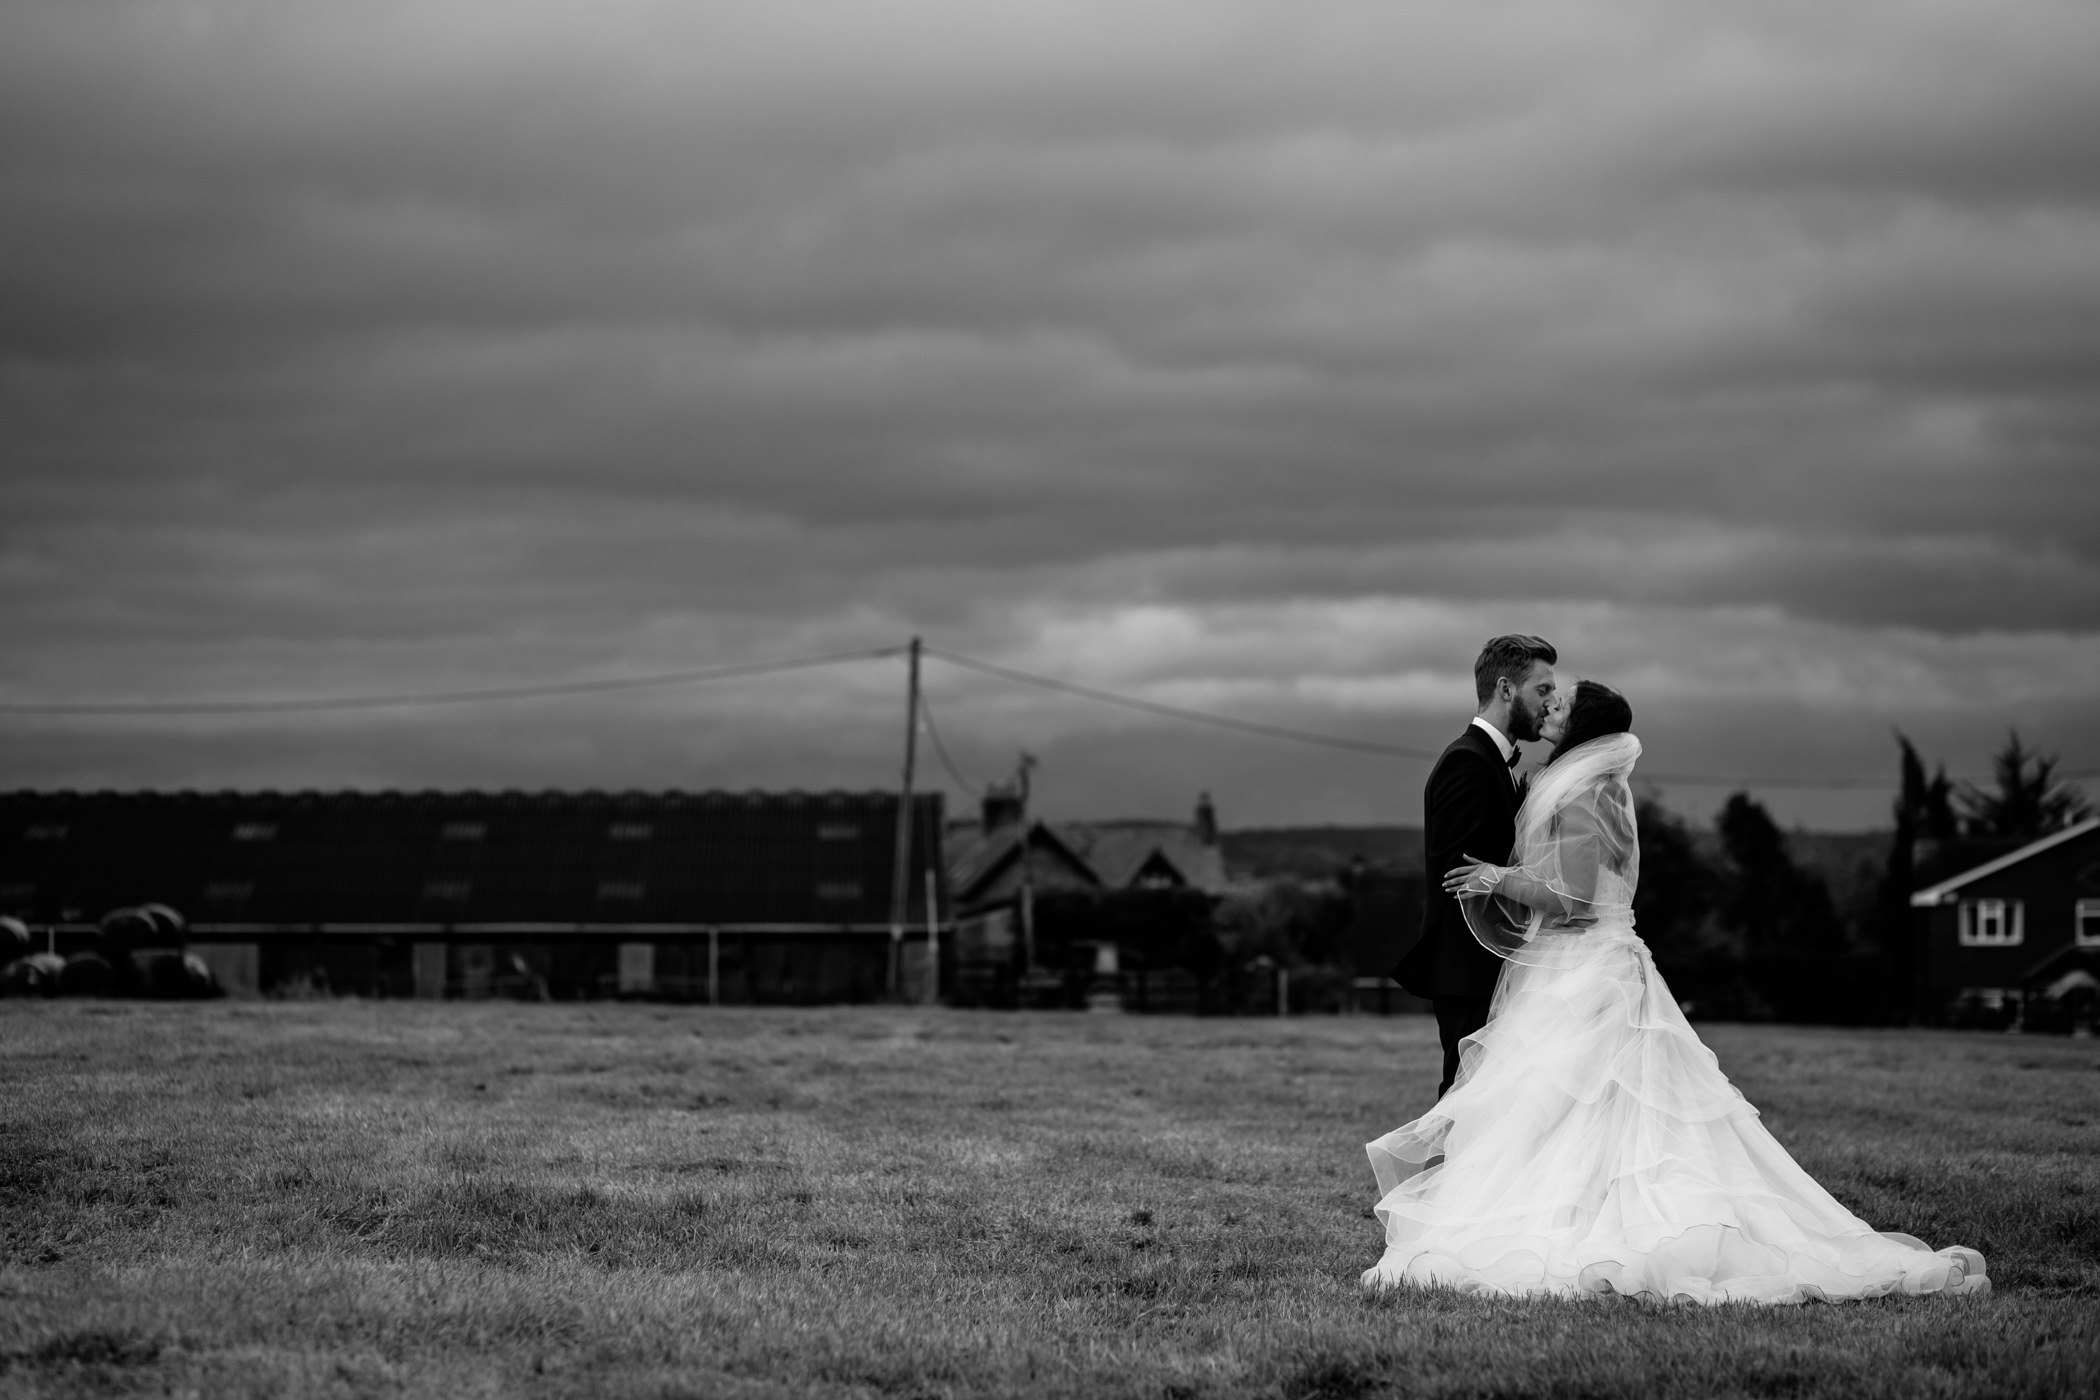 sansom-photography-becky-david-cheshire-wedding-34